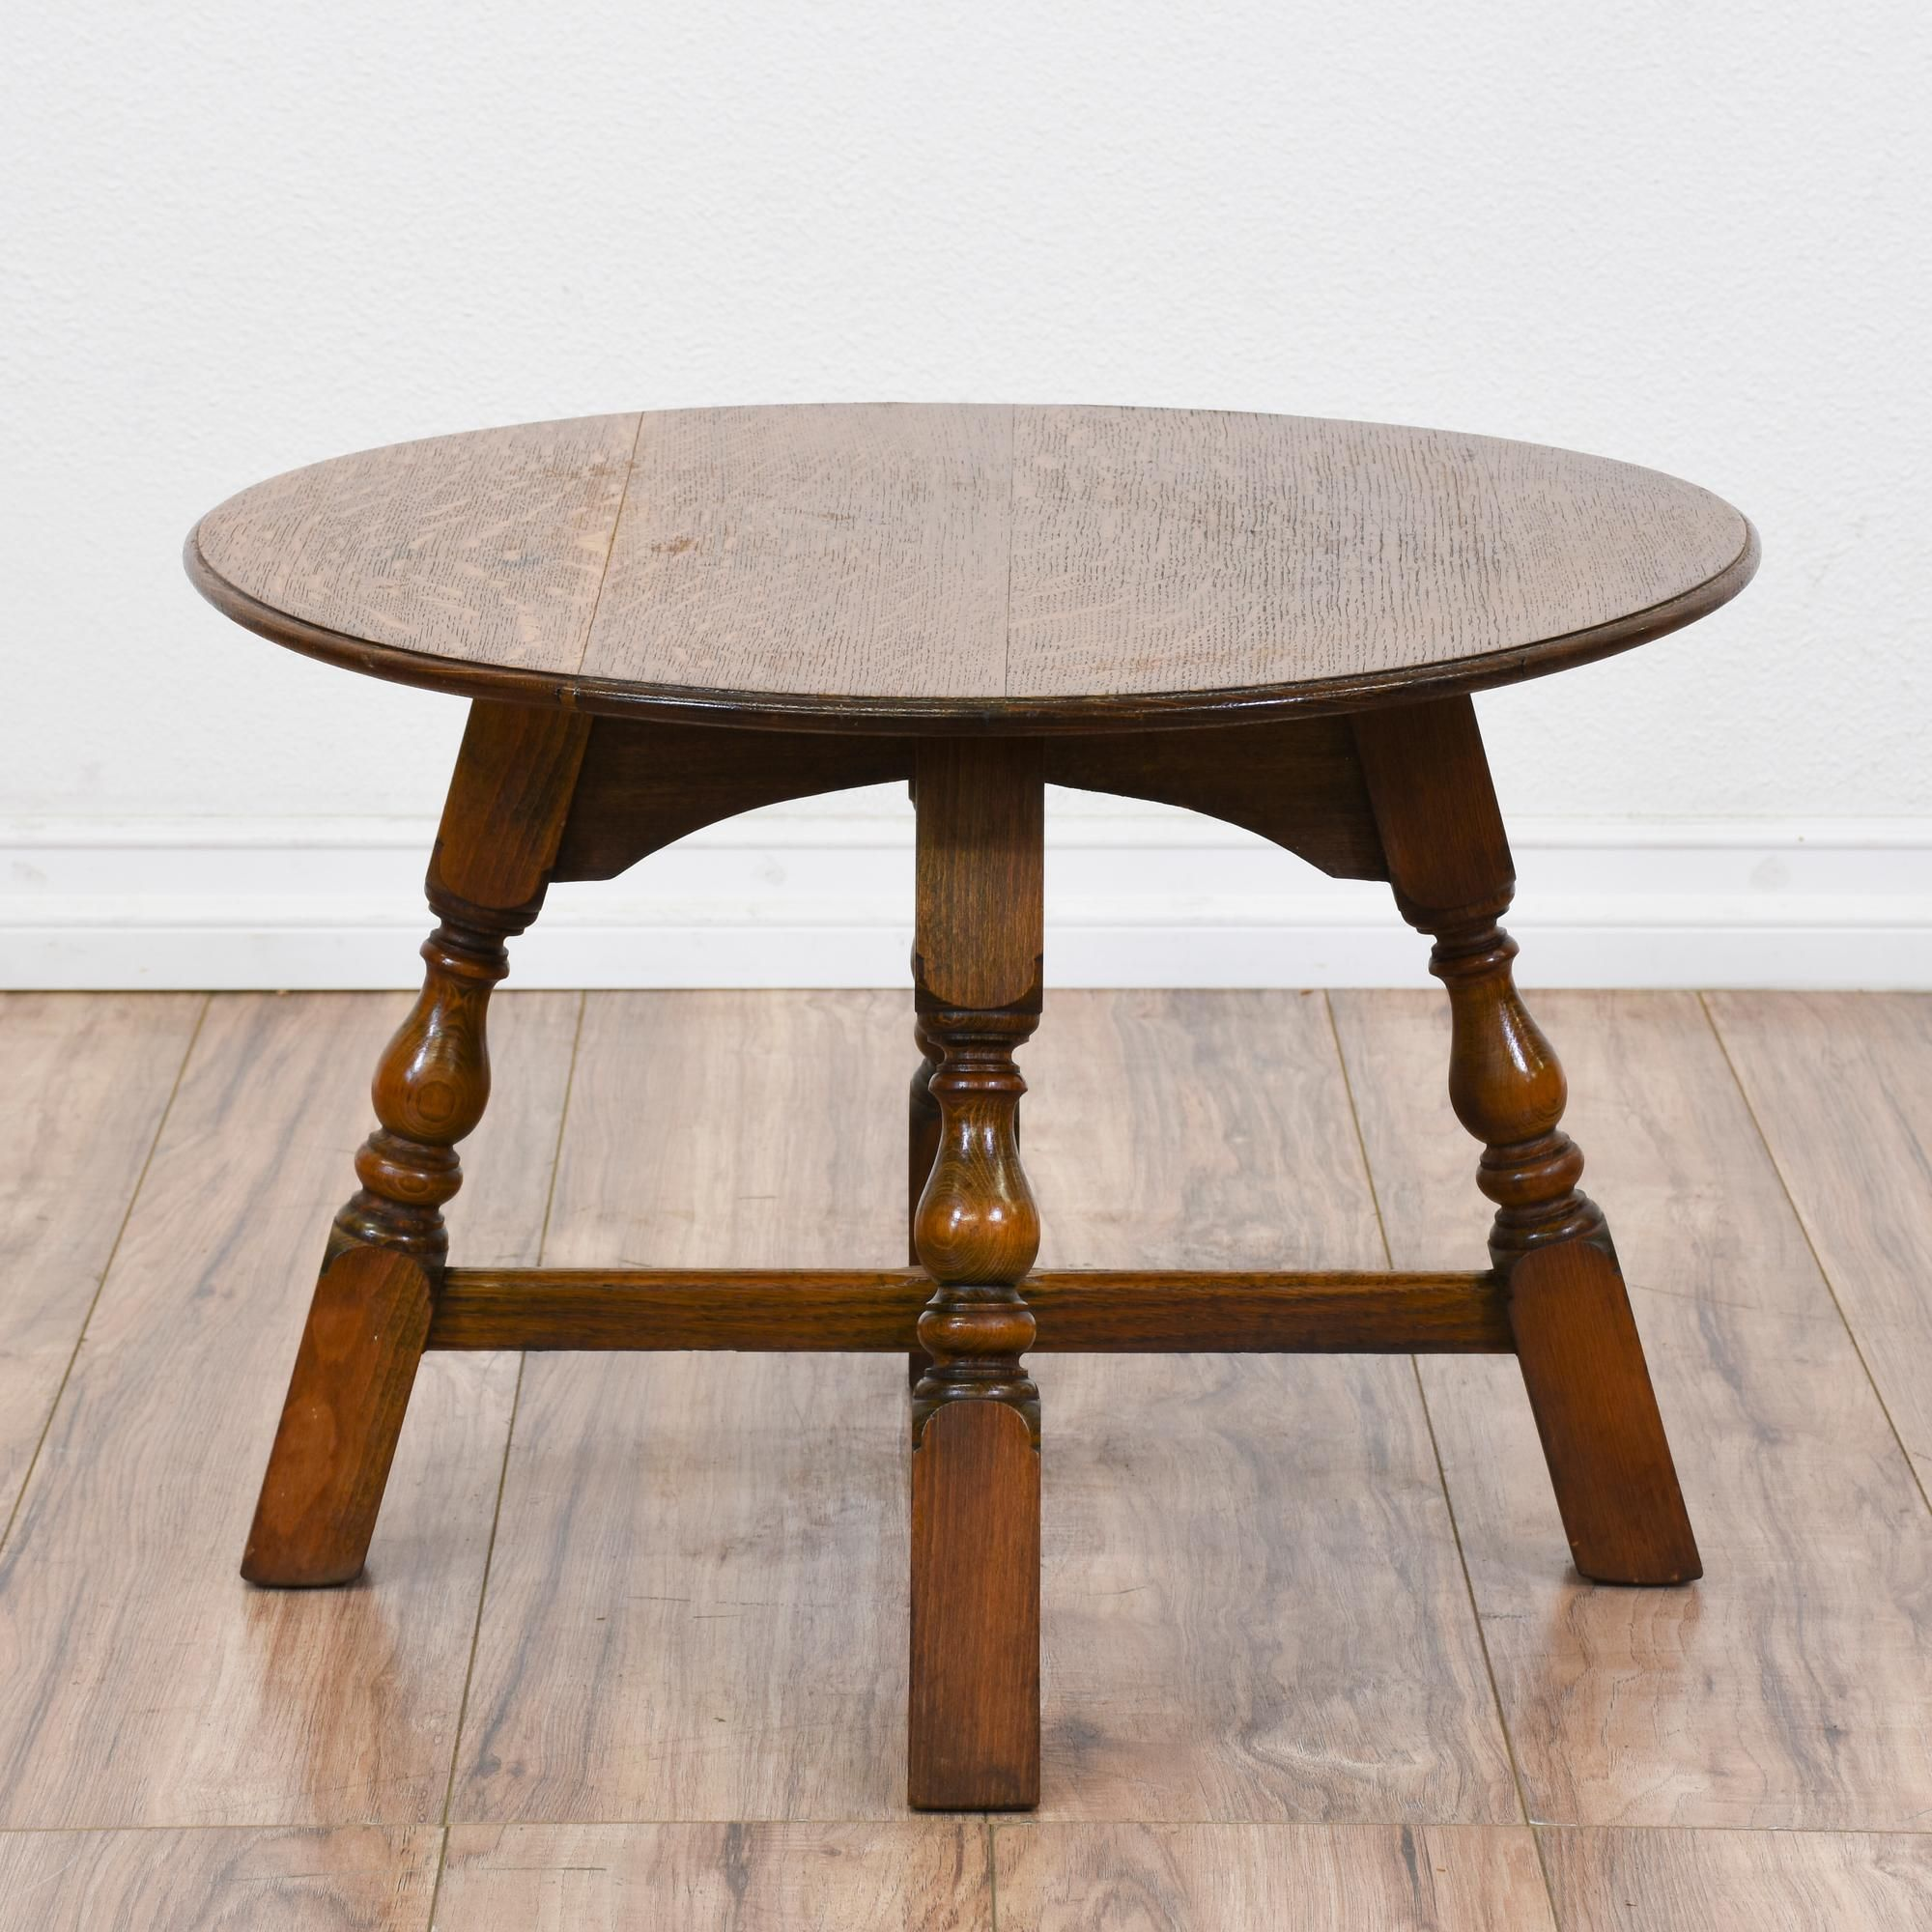 This rustic round end table is featured in a solid wood with a raw